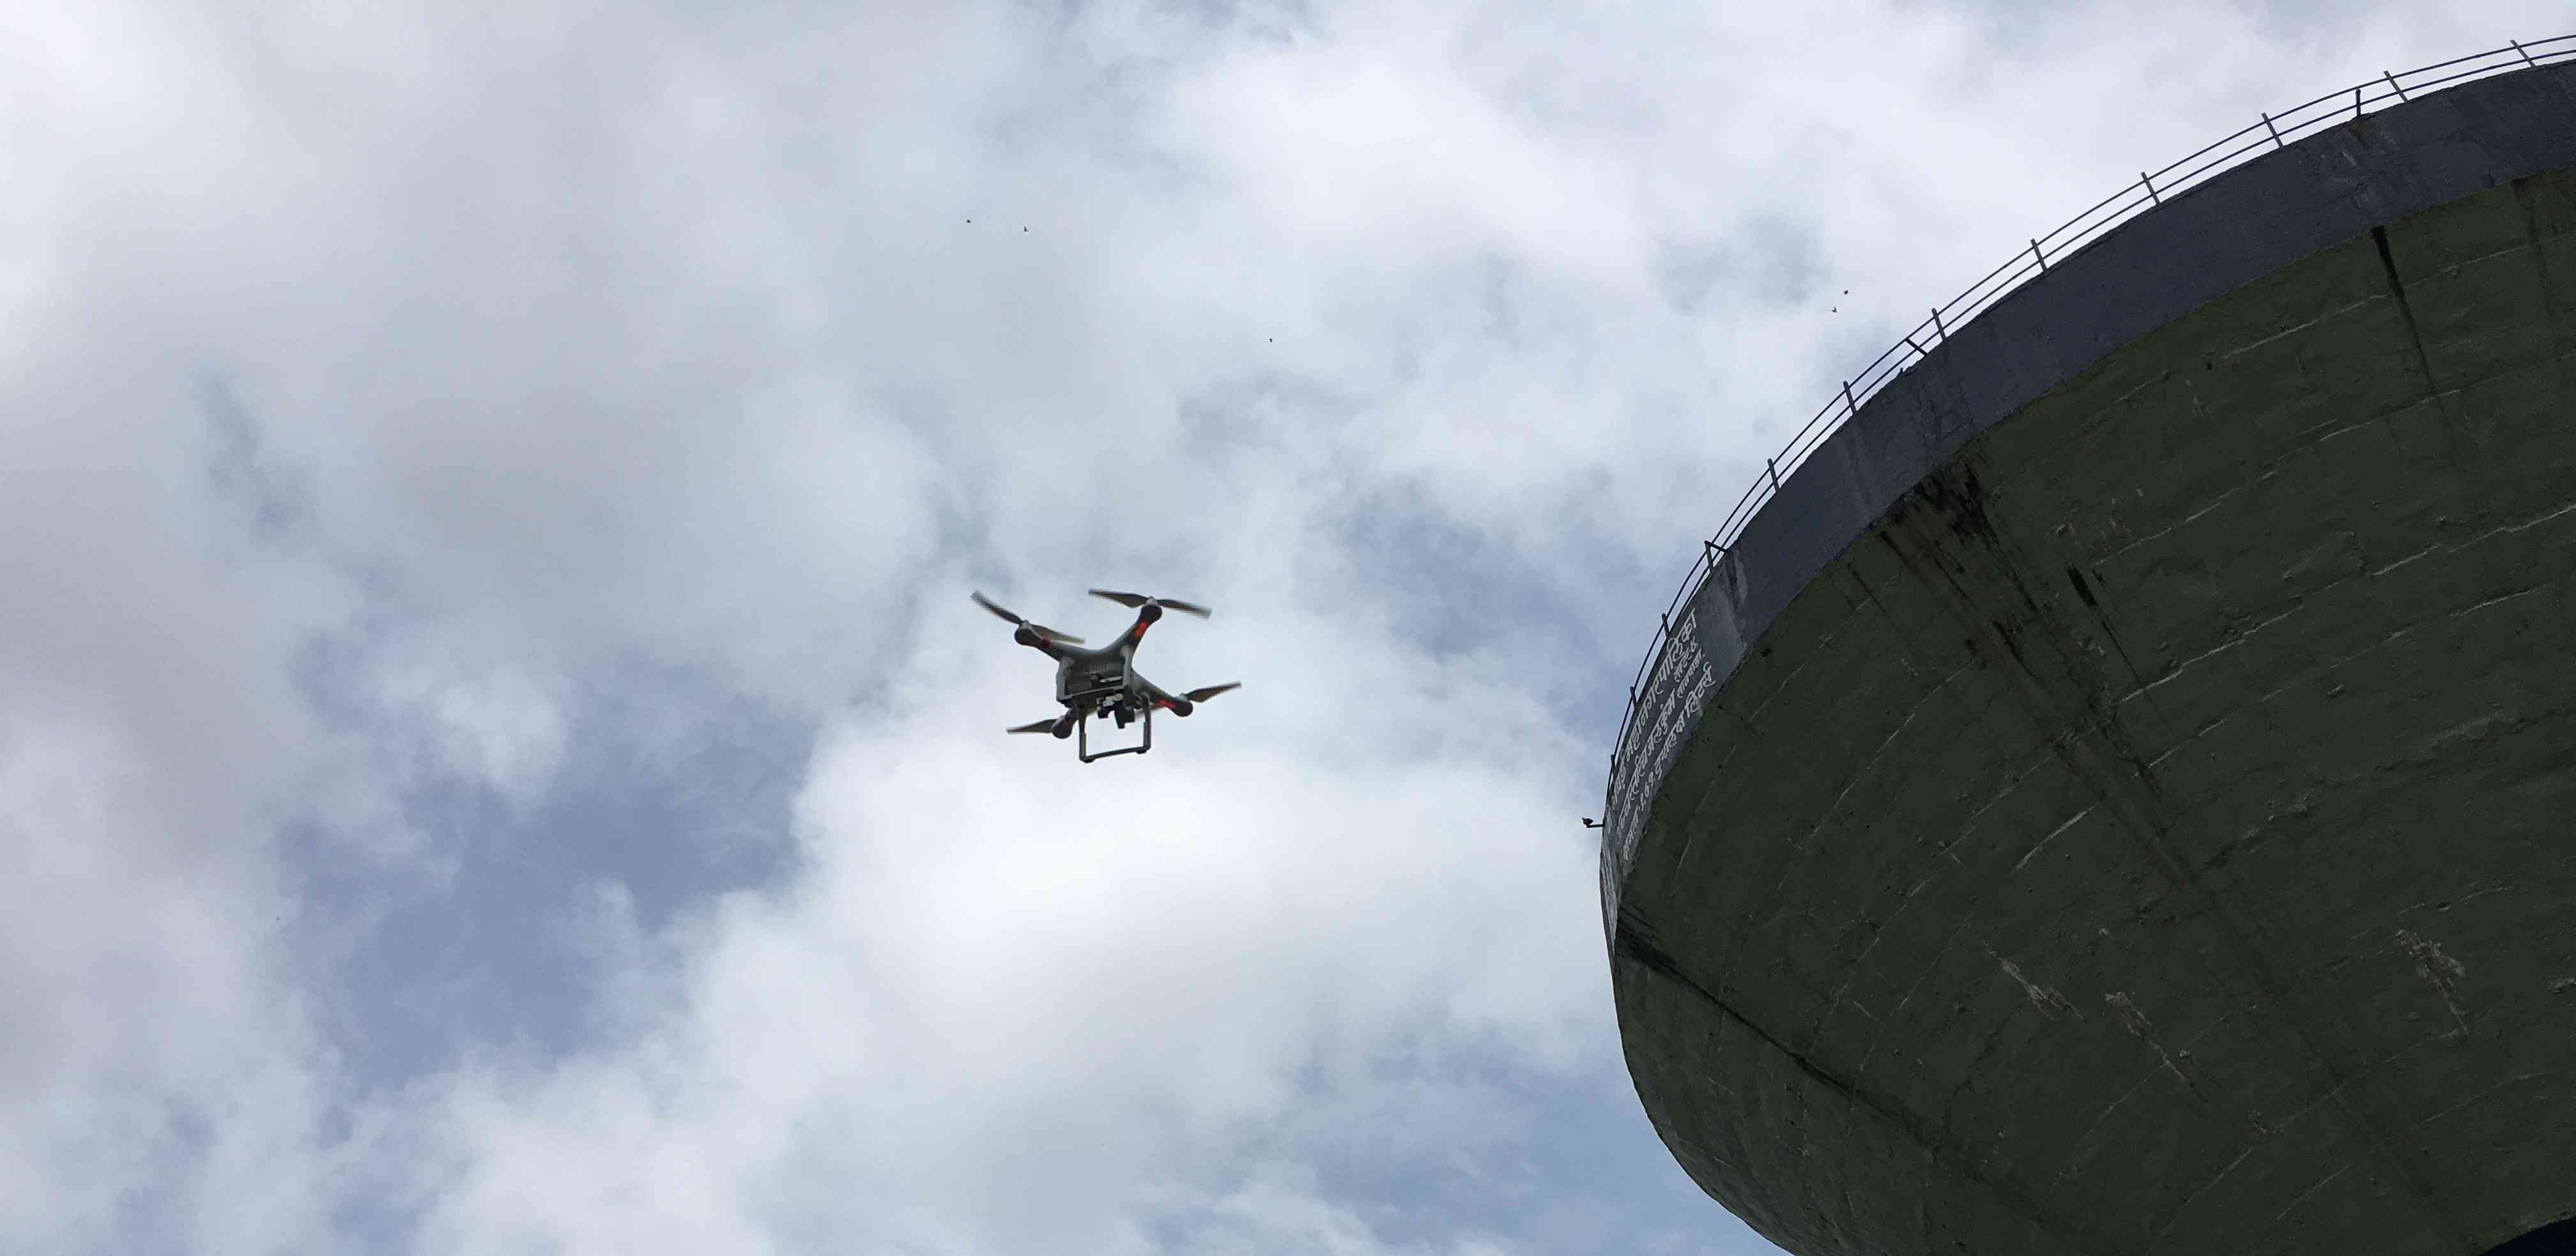 A drone spotted during a city survey by the Indian Institute for Human Settlements in Navi Mumbai, Maharashtra, in August 2018. Photo credit: Mukesh Yadav